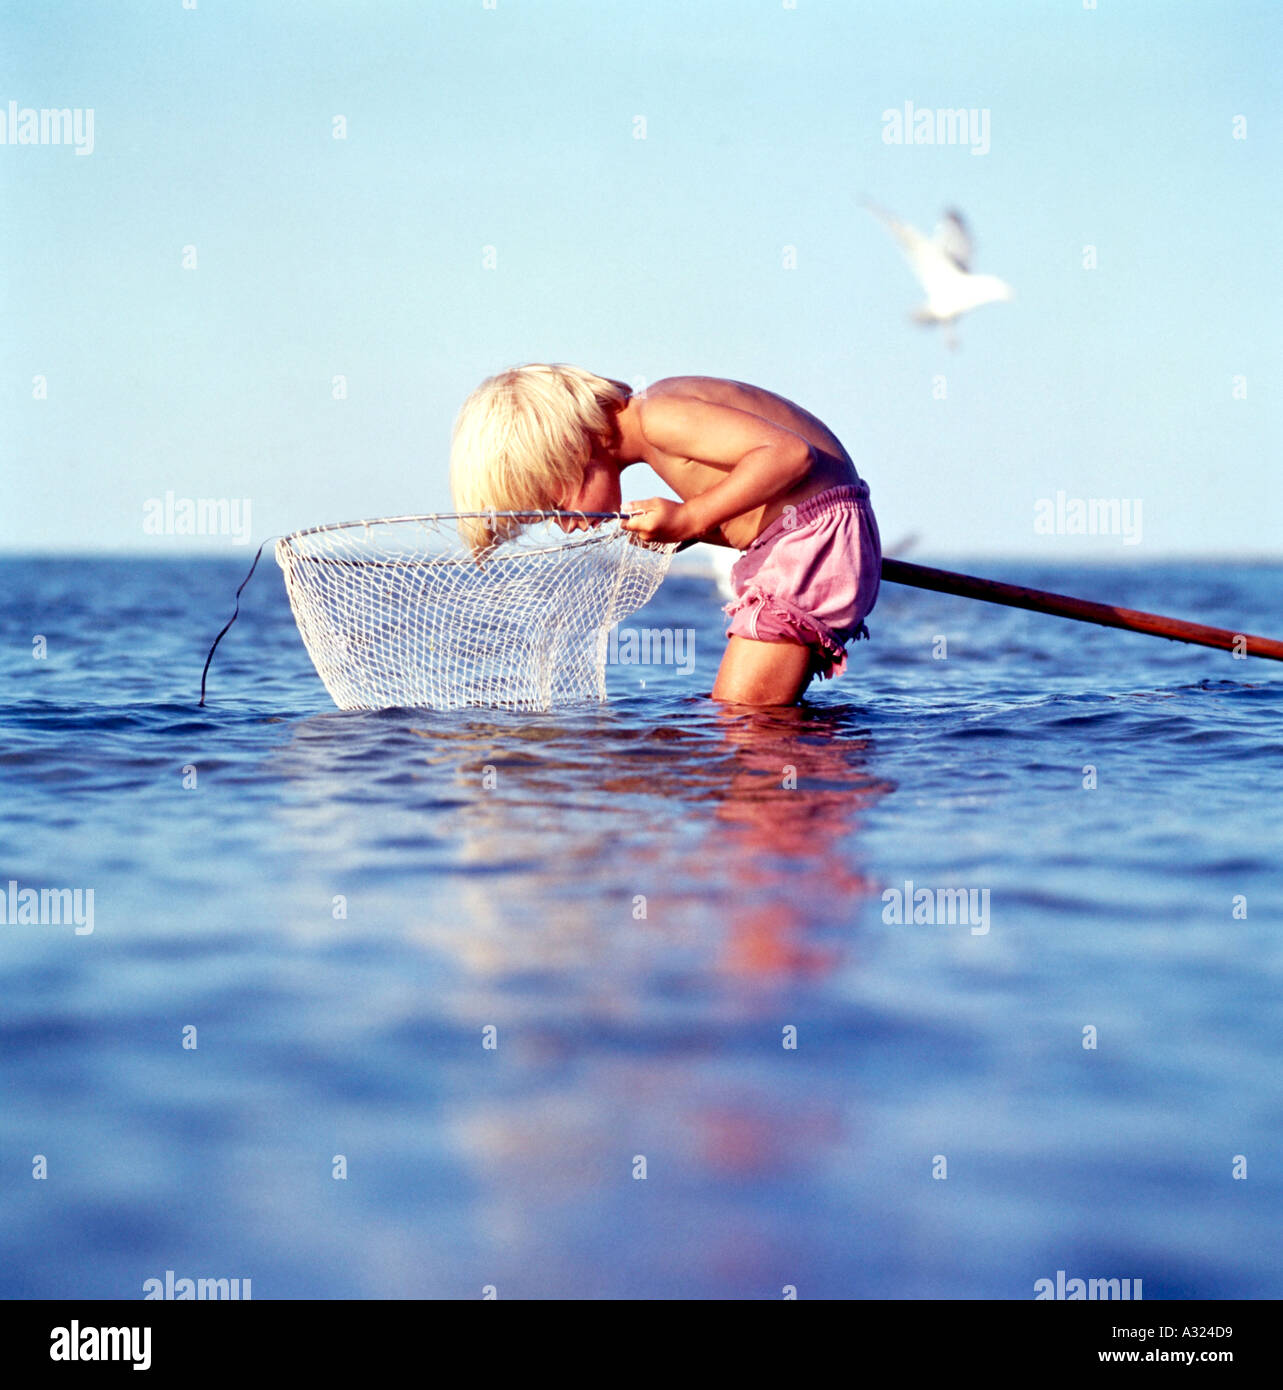 Young boy standing in shallow ocean water hunched over and looking into a fishing net - Stock Image